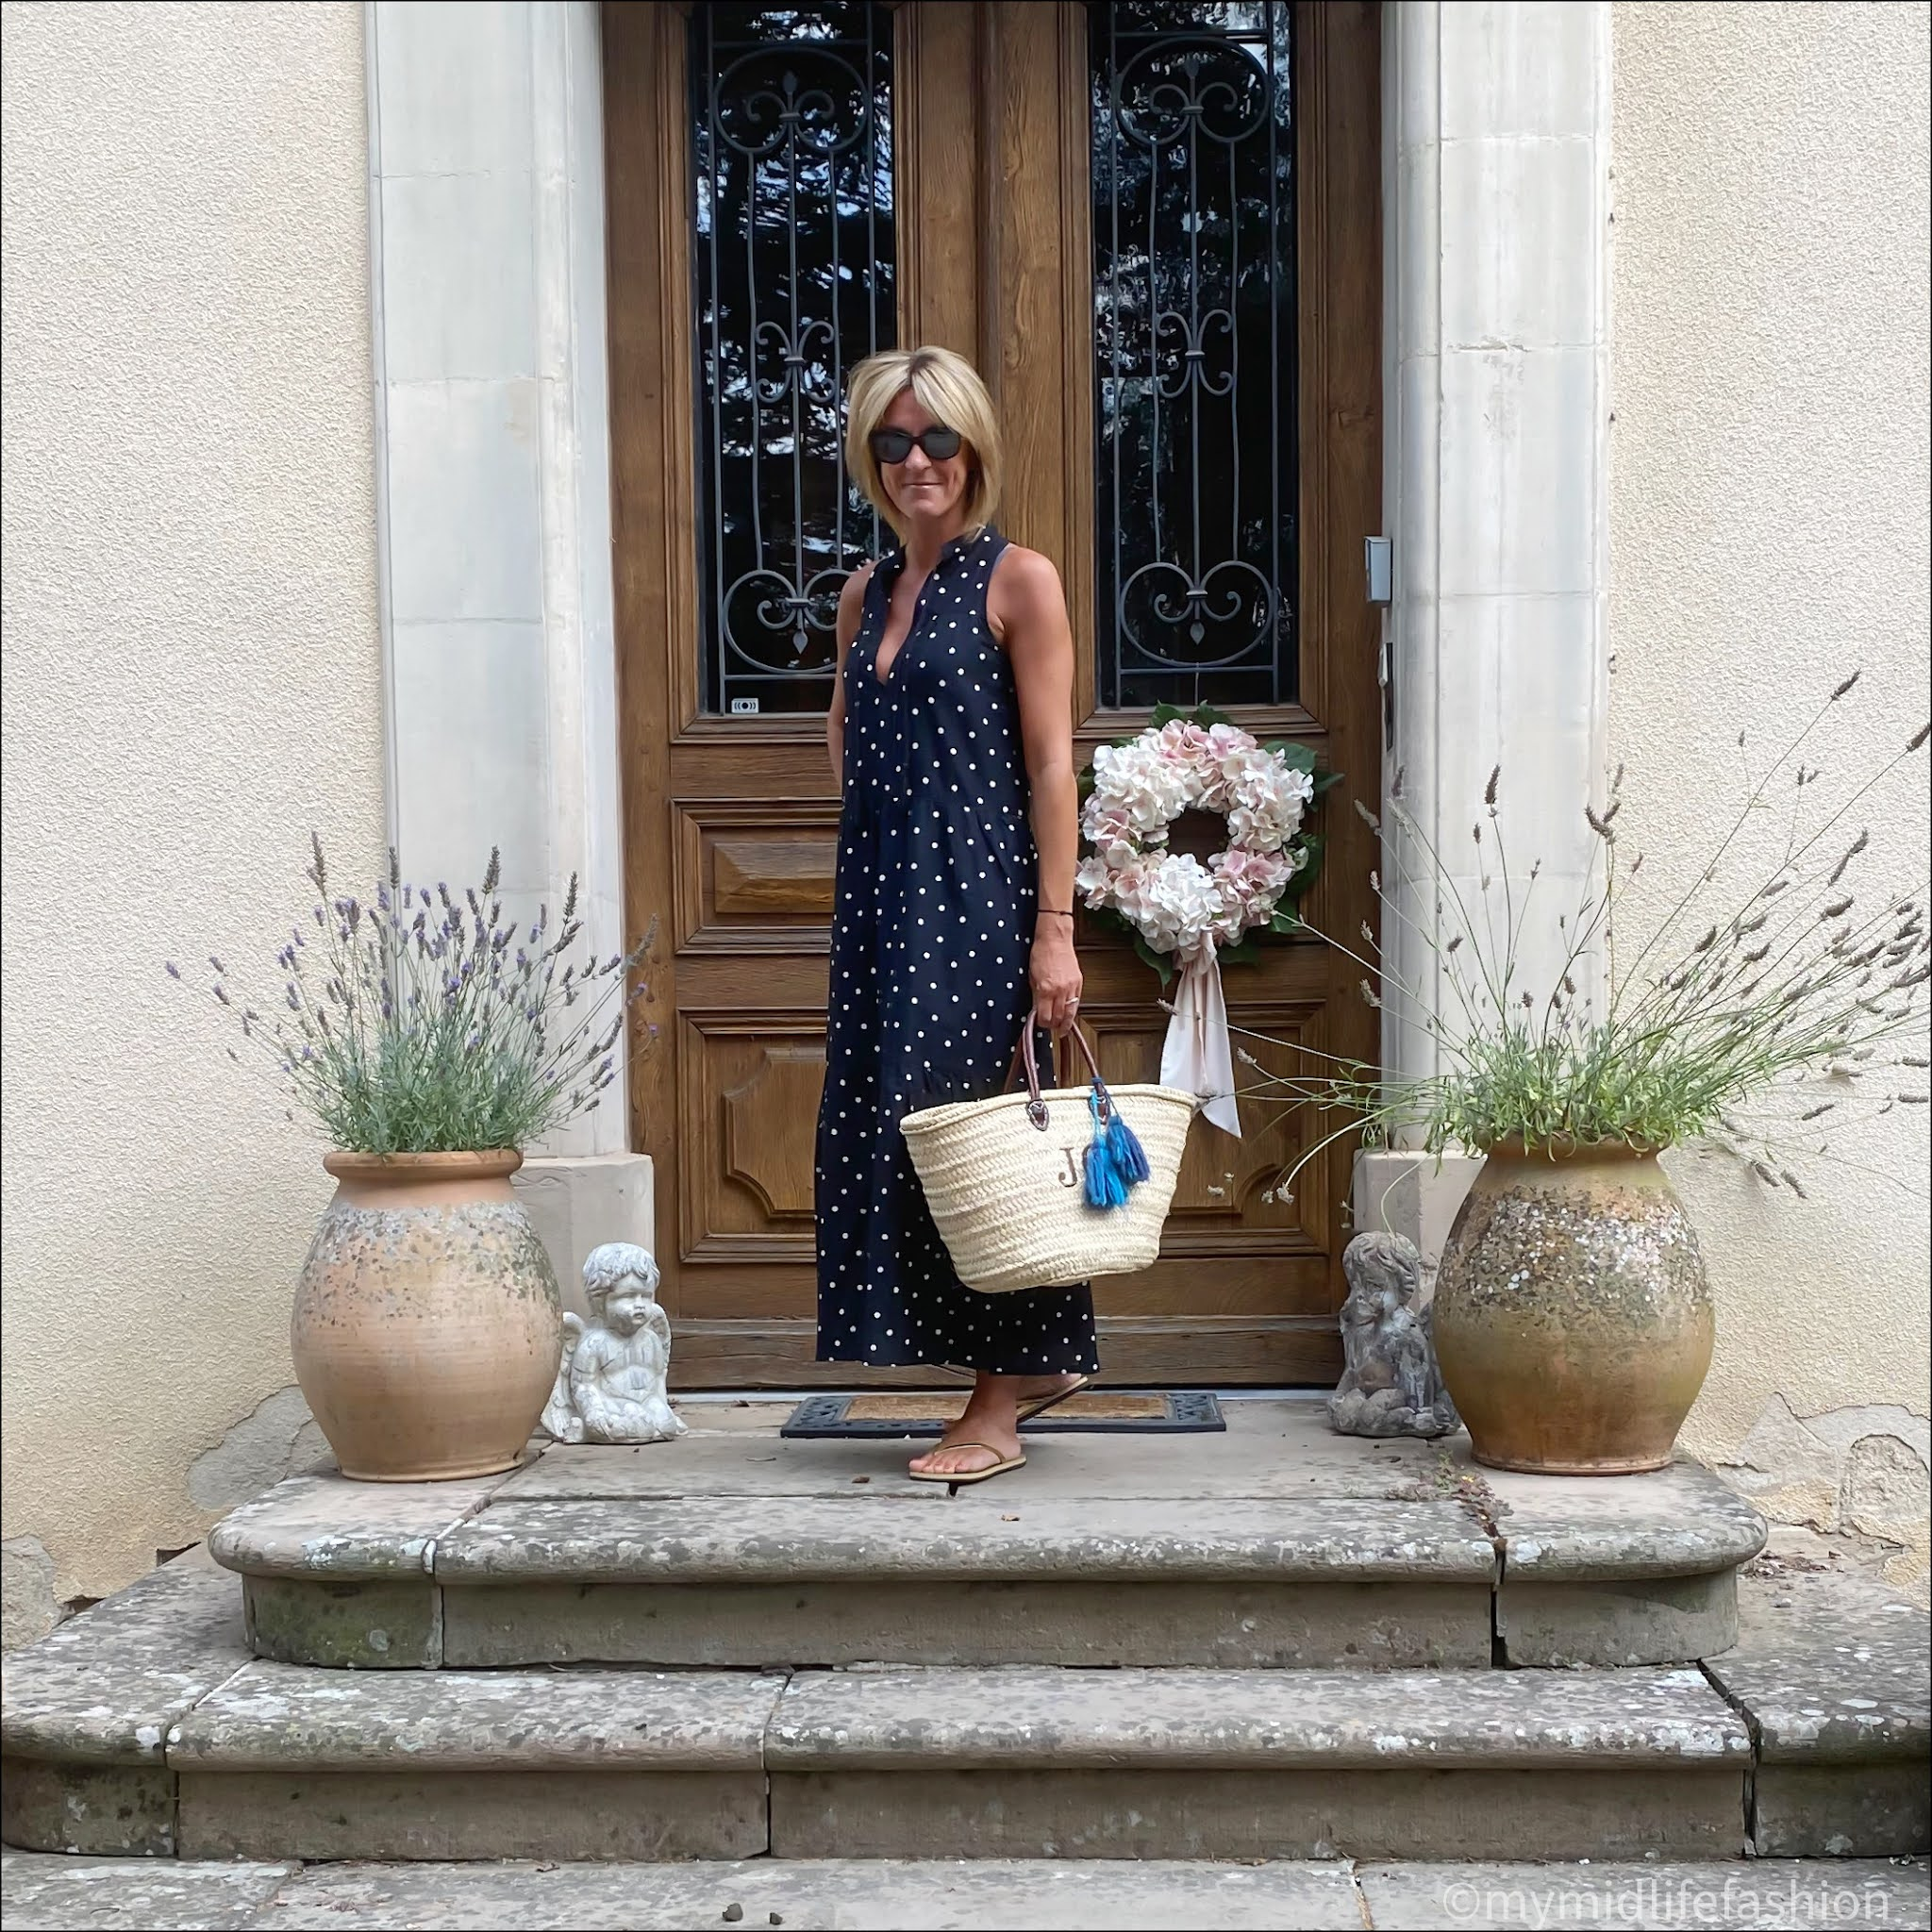 My midlife fashion, j crew polka dot maxi dress, initially London covent short handled basket, havaianas gold slim fit flip flops